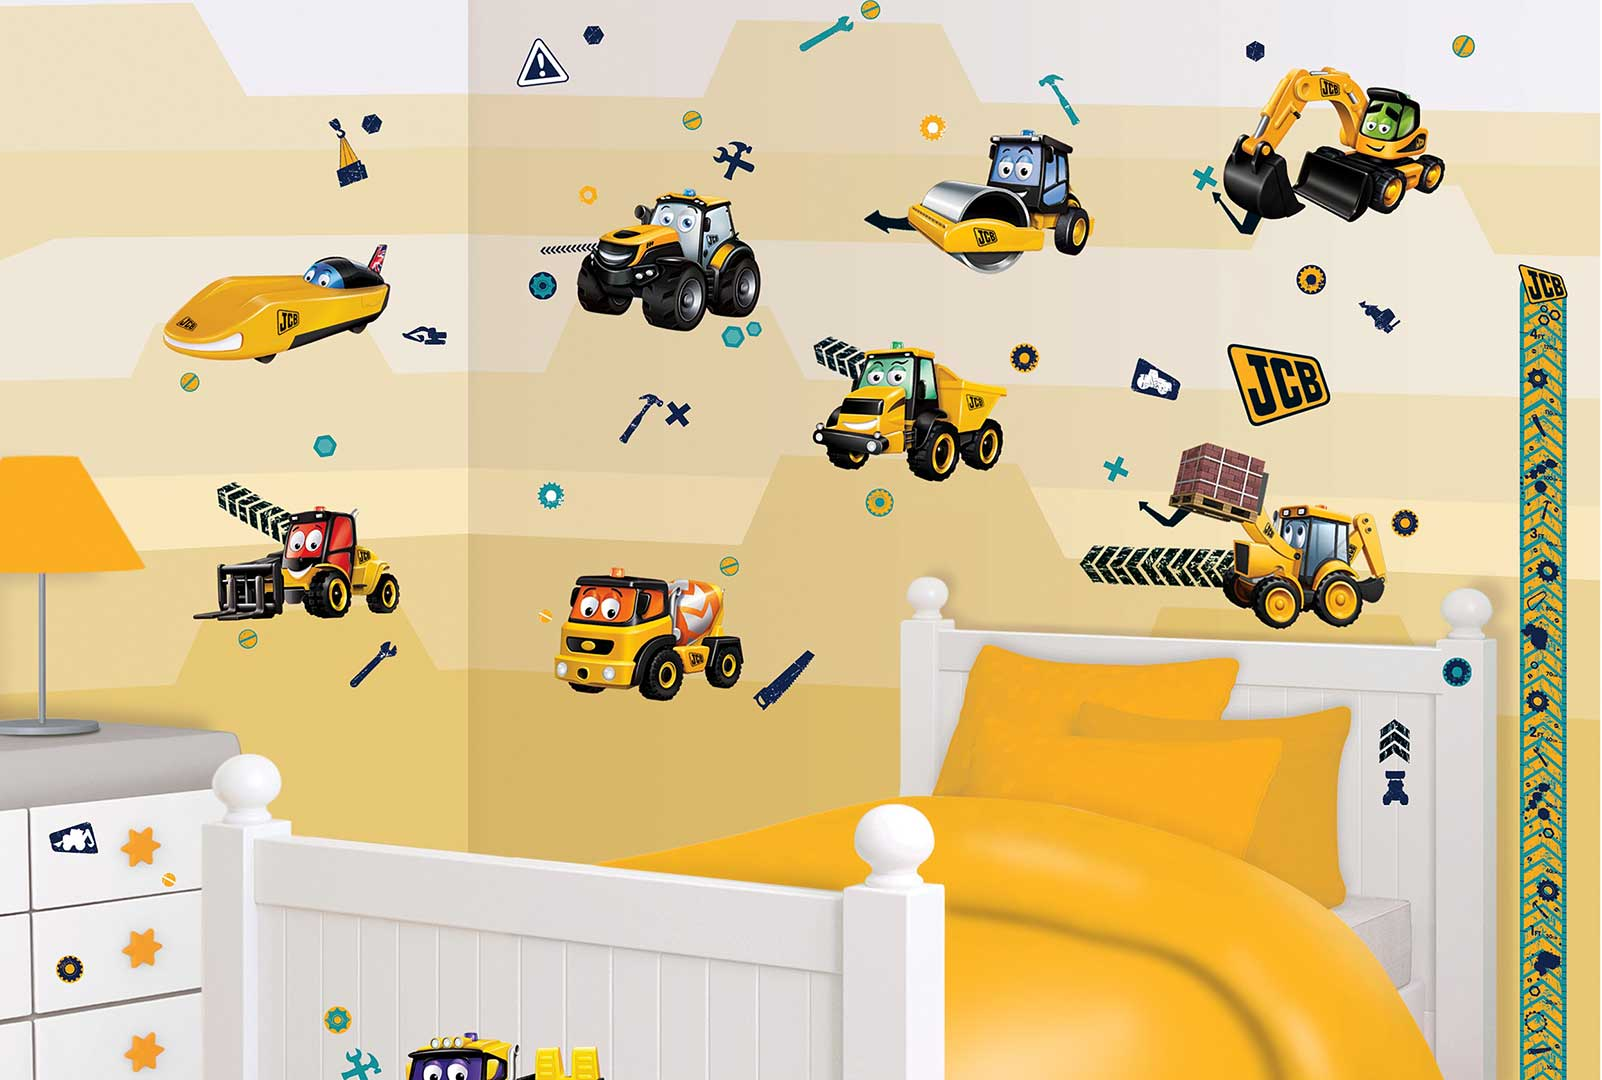 walltastic wandtattoo kinderzimmer baustelle jcb wandsticker kinderzimmer neu ebay. Black Bedroom Furniture Sets. Home Design Ideas